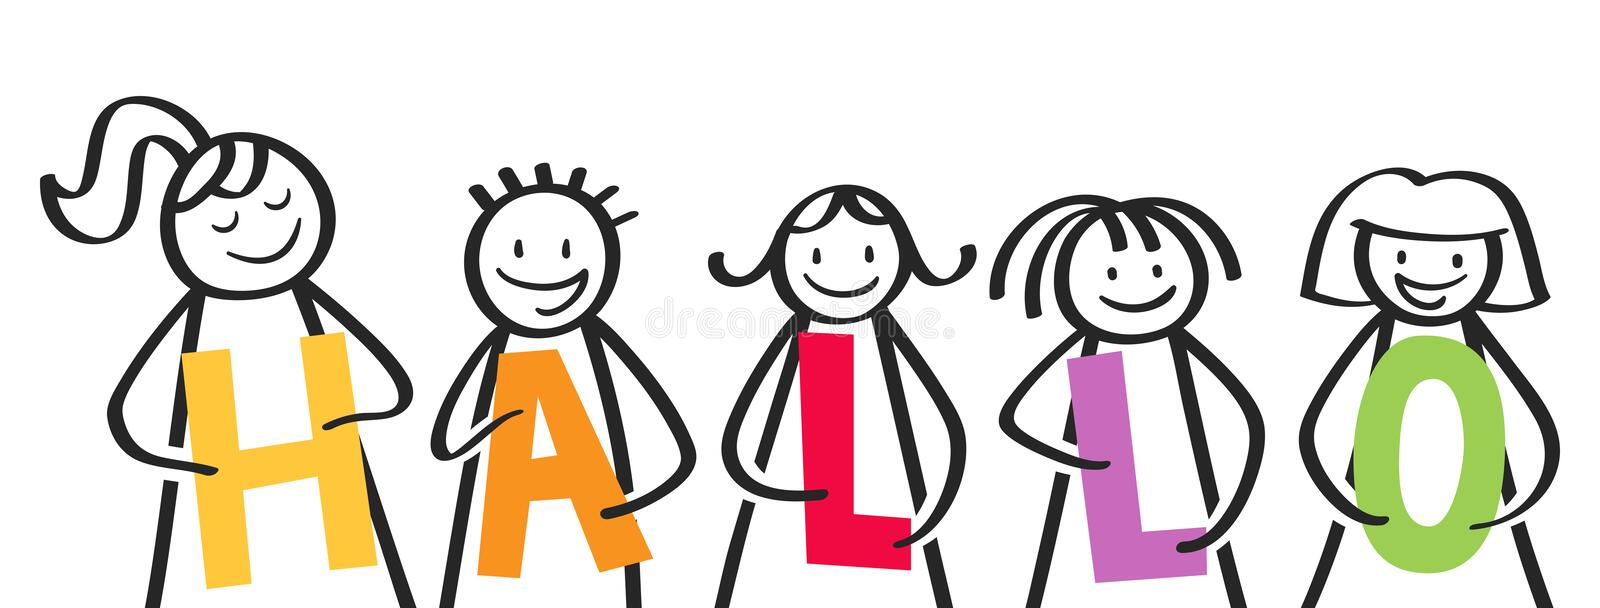 HALLO, smiling group of stick figures holding colorful letters, welcome address, german kids saying hello royalty free illustration